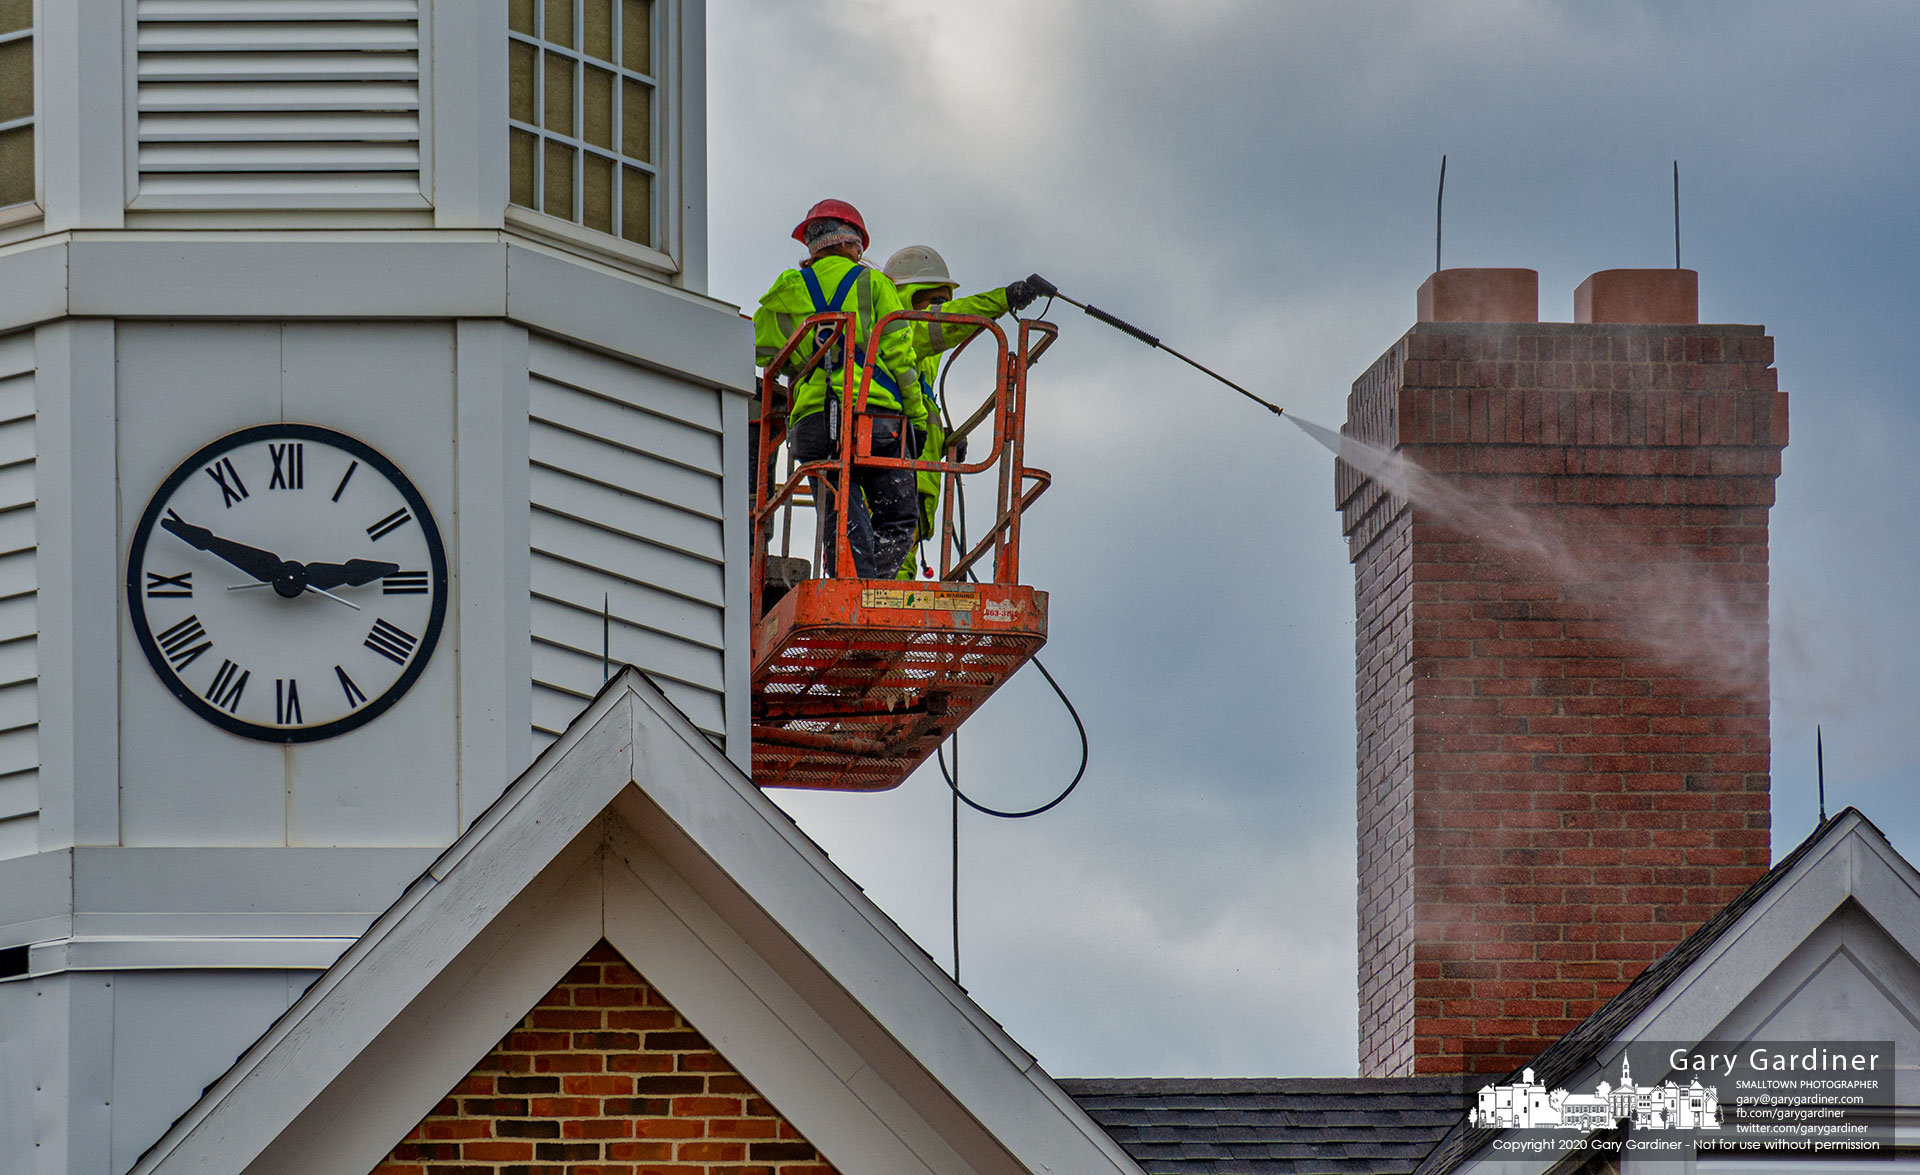 A cleaning crew power washes the chimney on city hall where parts of the building are undergoing maintenance. My Final Photo for May 12, 2020.